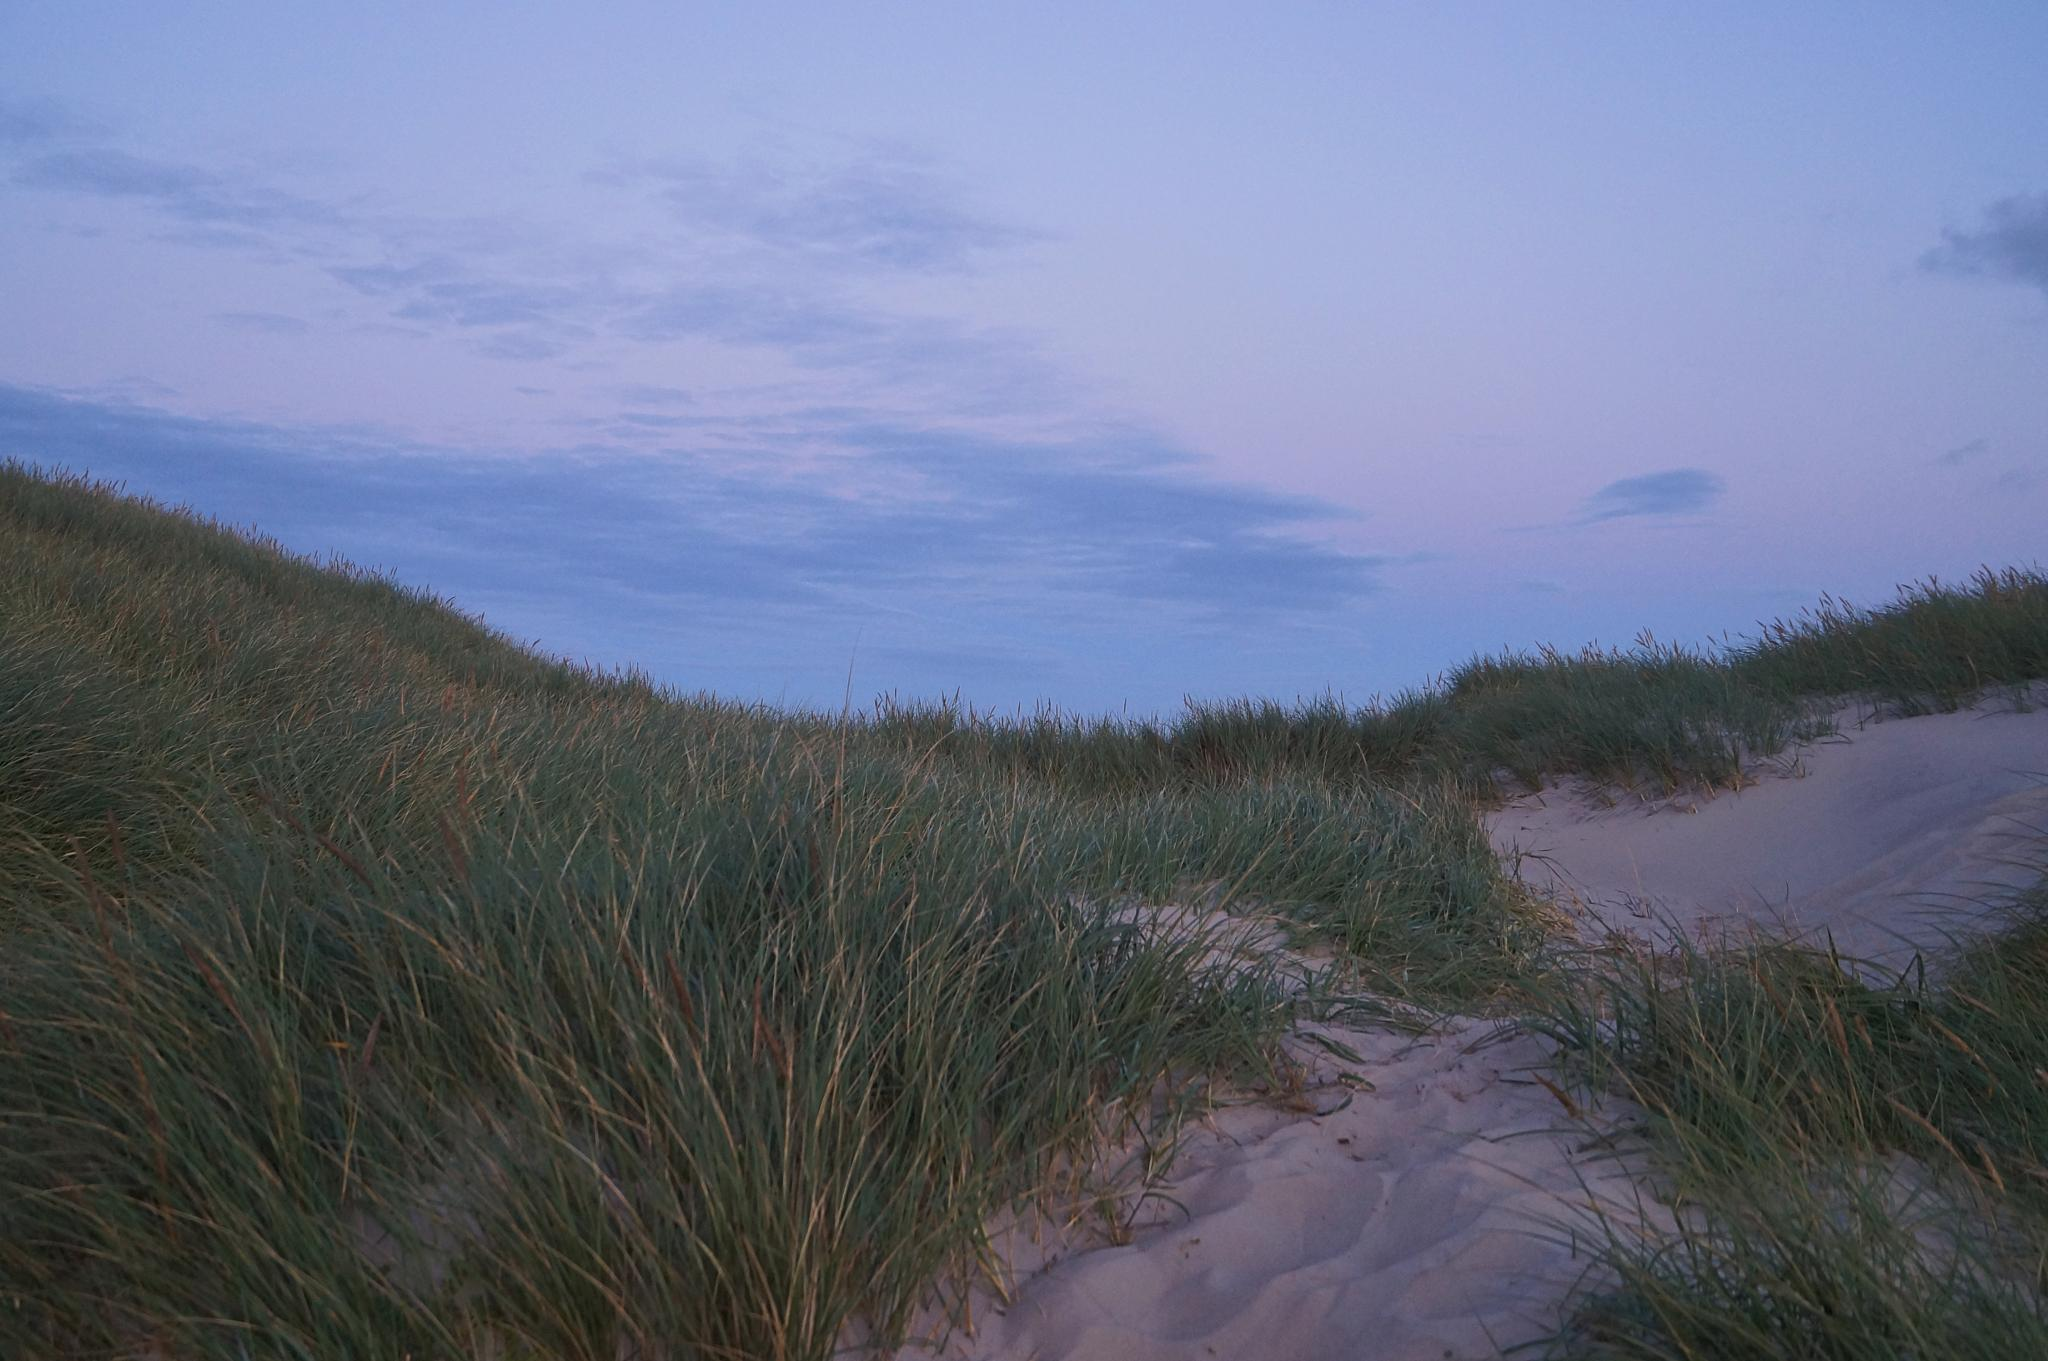 Evening at The North Sea by MollerNielsen